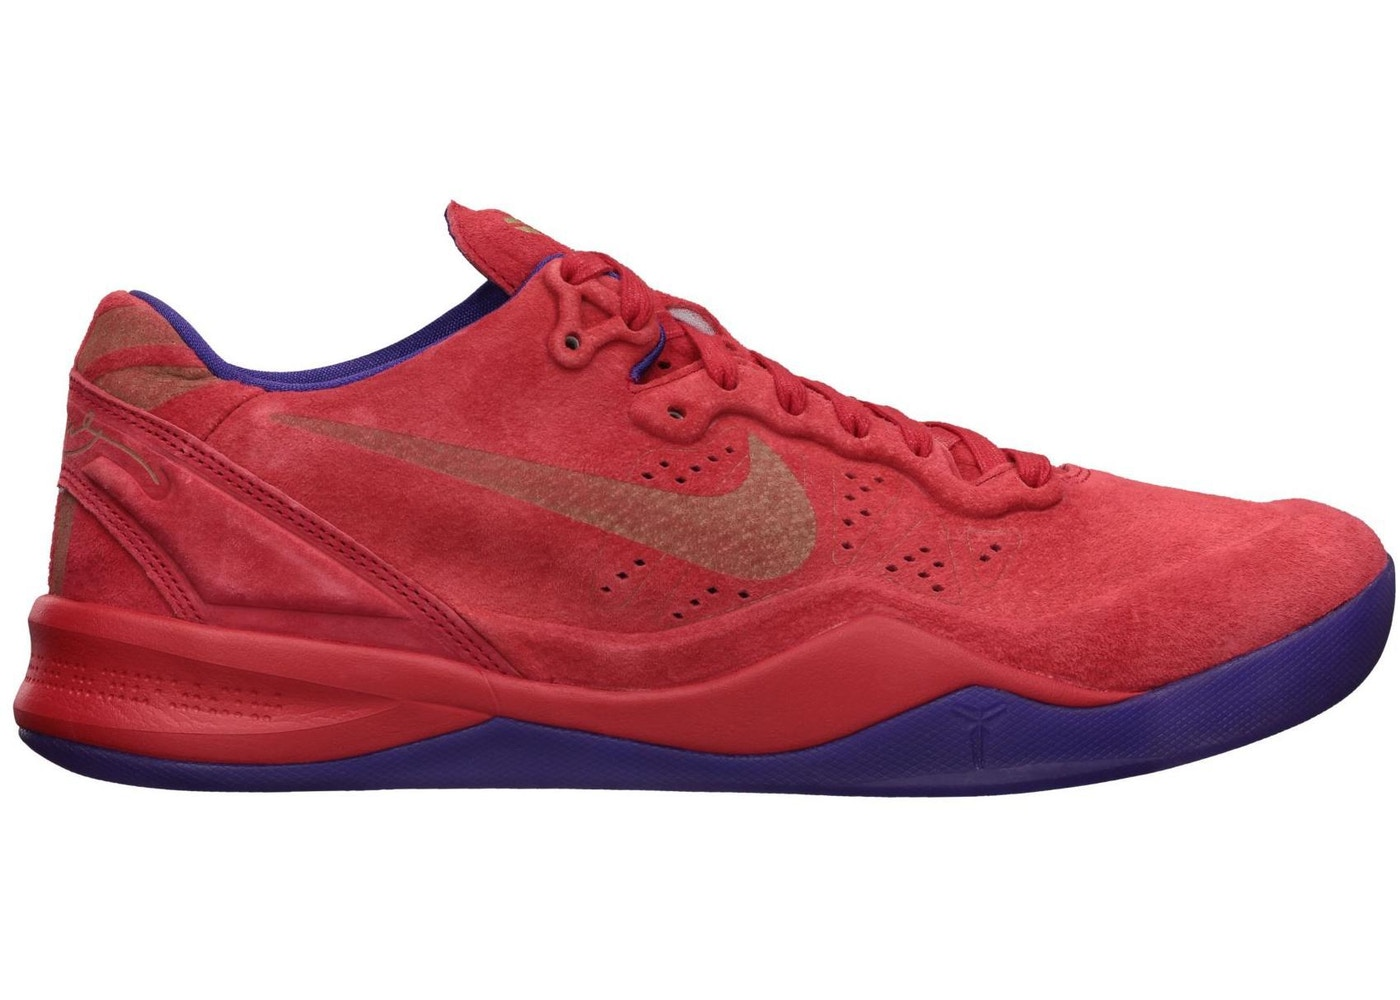 quality design 7784e 6d4e9 Buy Nike Kobe 8 Shoes   Deadstock Sneakers